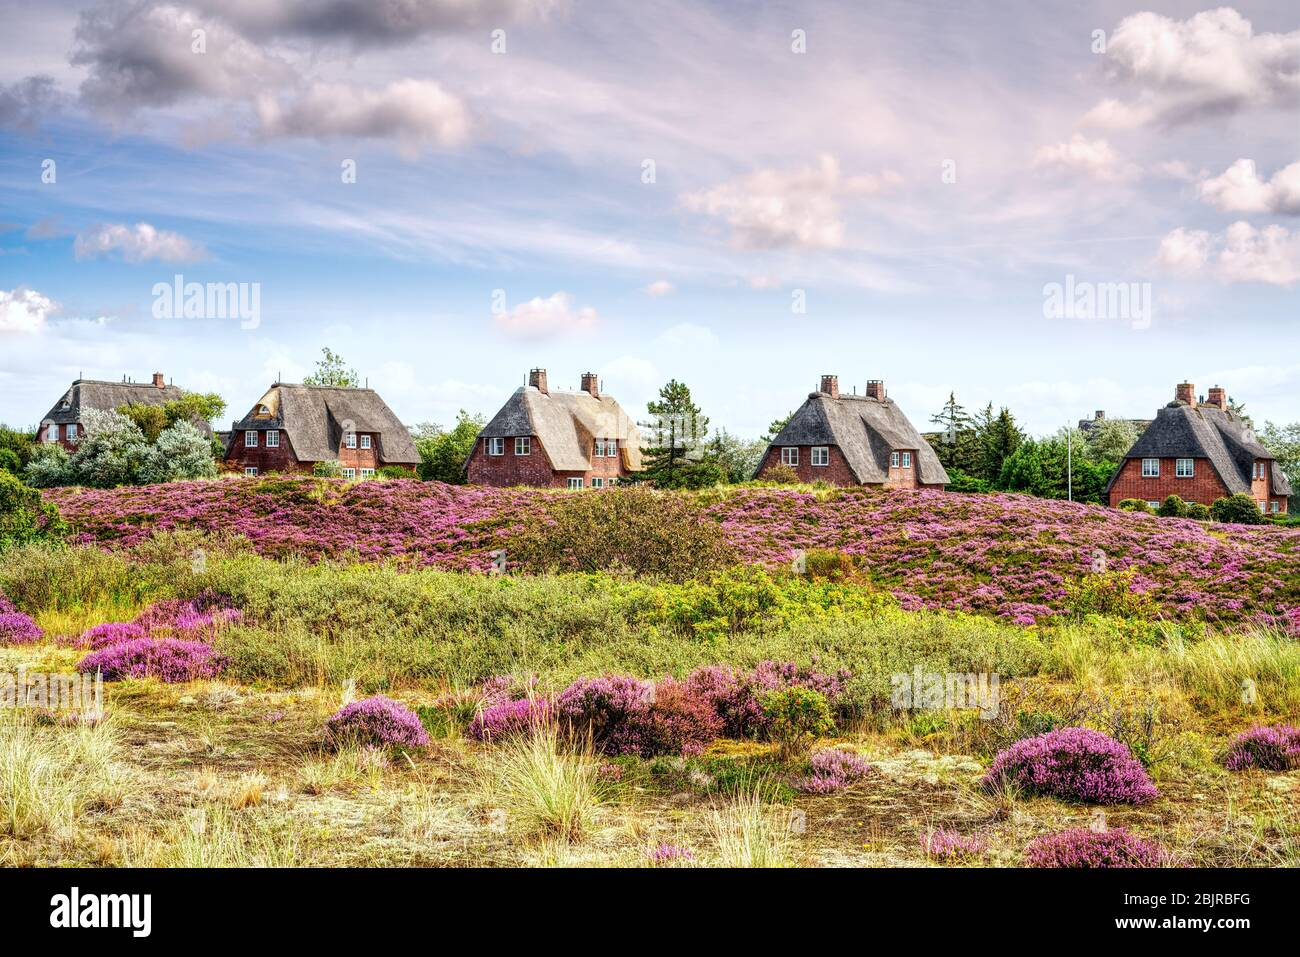 Thatched cottages with blooming heather growing on the dunes. Fairytale panorama landscape on the island of Sylt, North Frisian Islands, Germany. Stock Photo